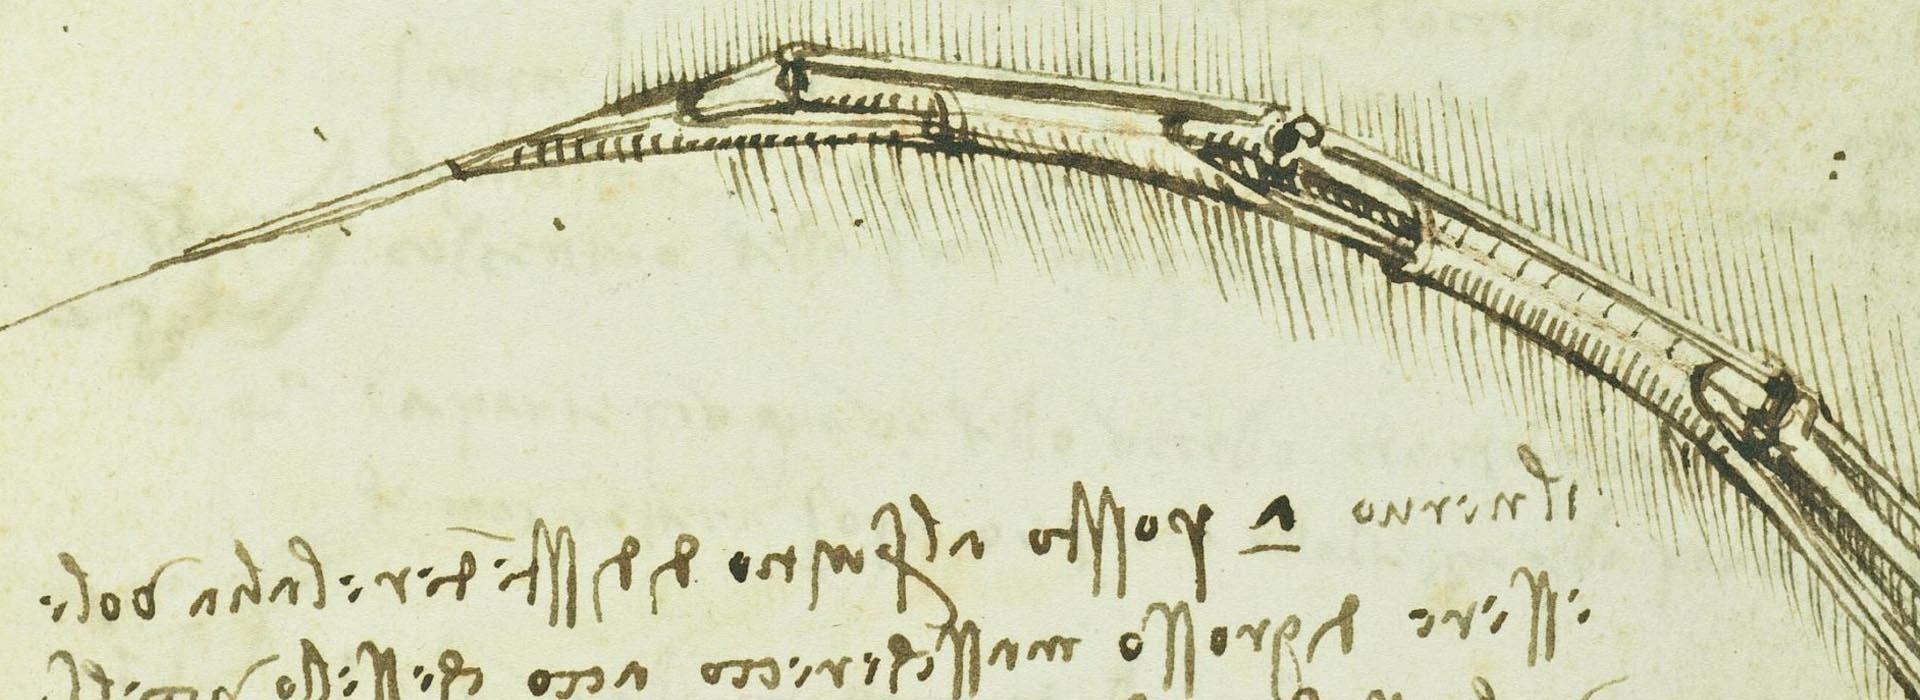 LEONARDO DA VINCI'S CODEX ON THE FLIGHT OF BIRDS